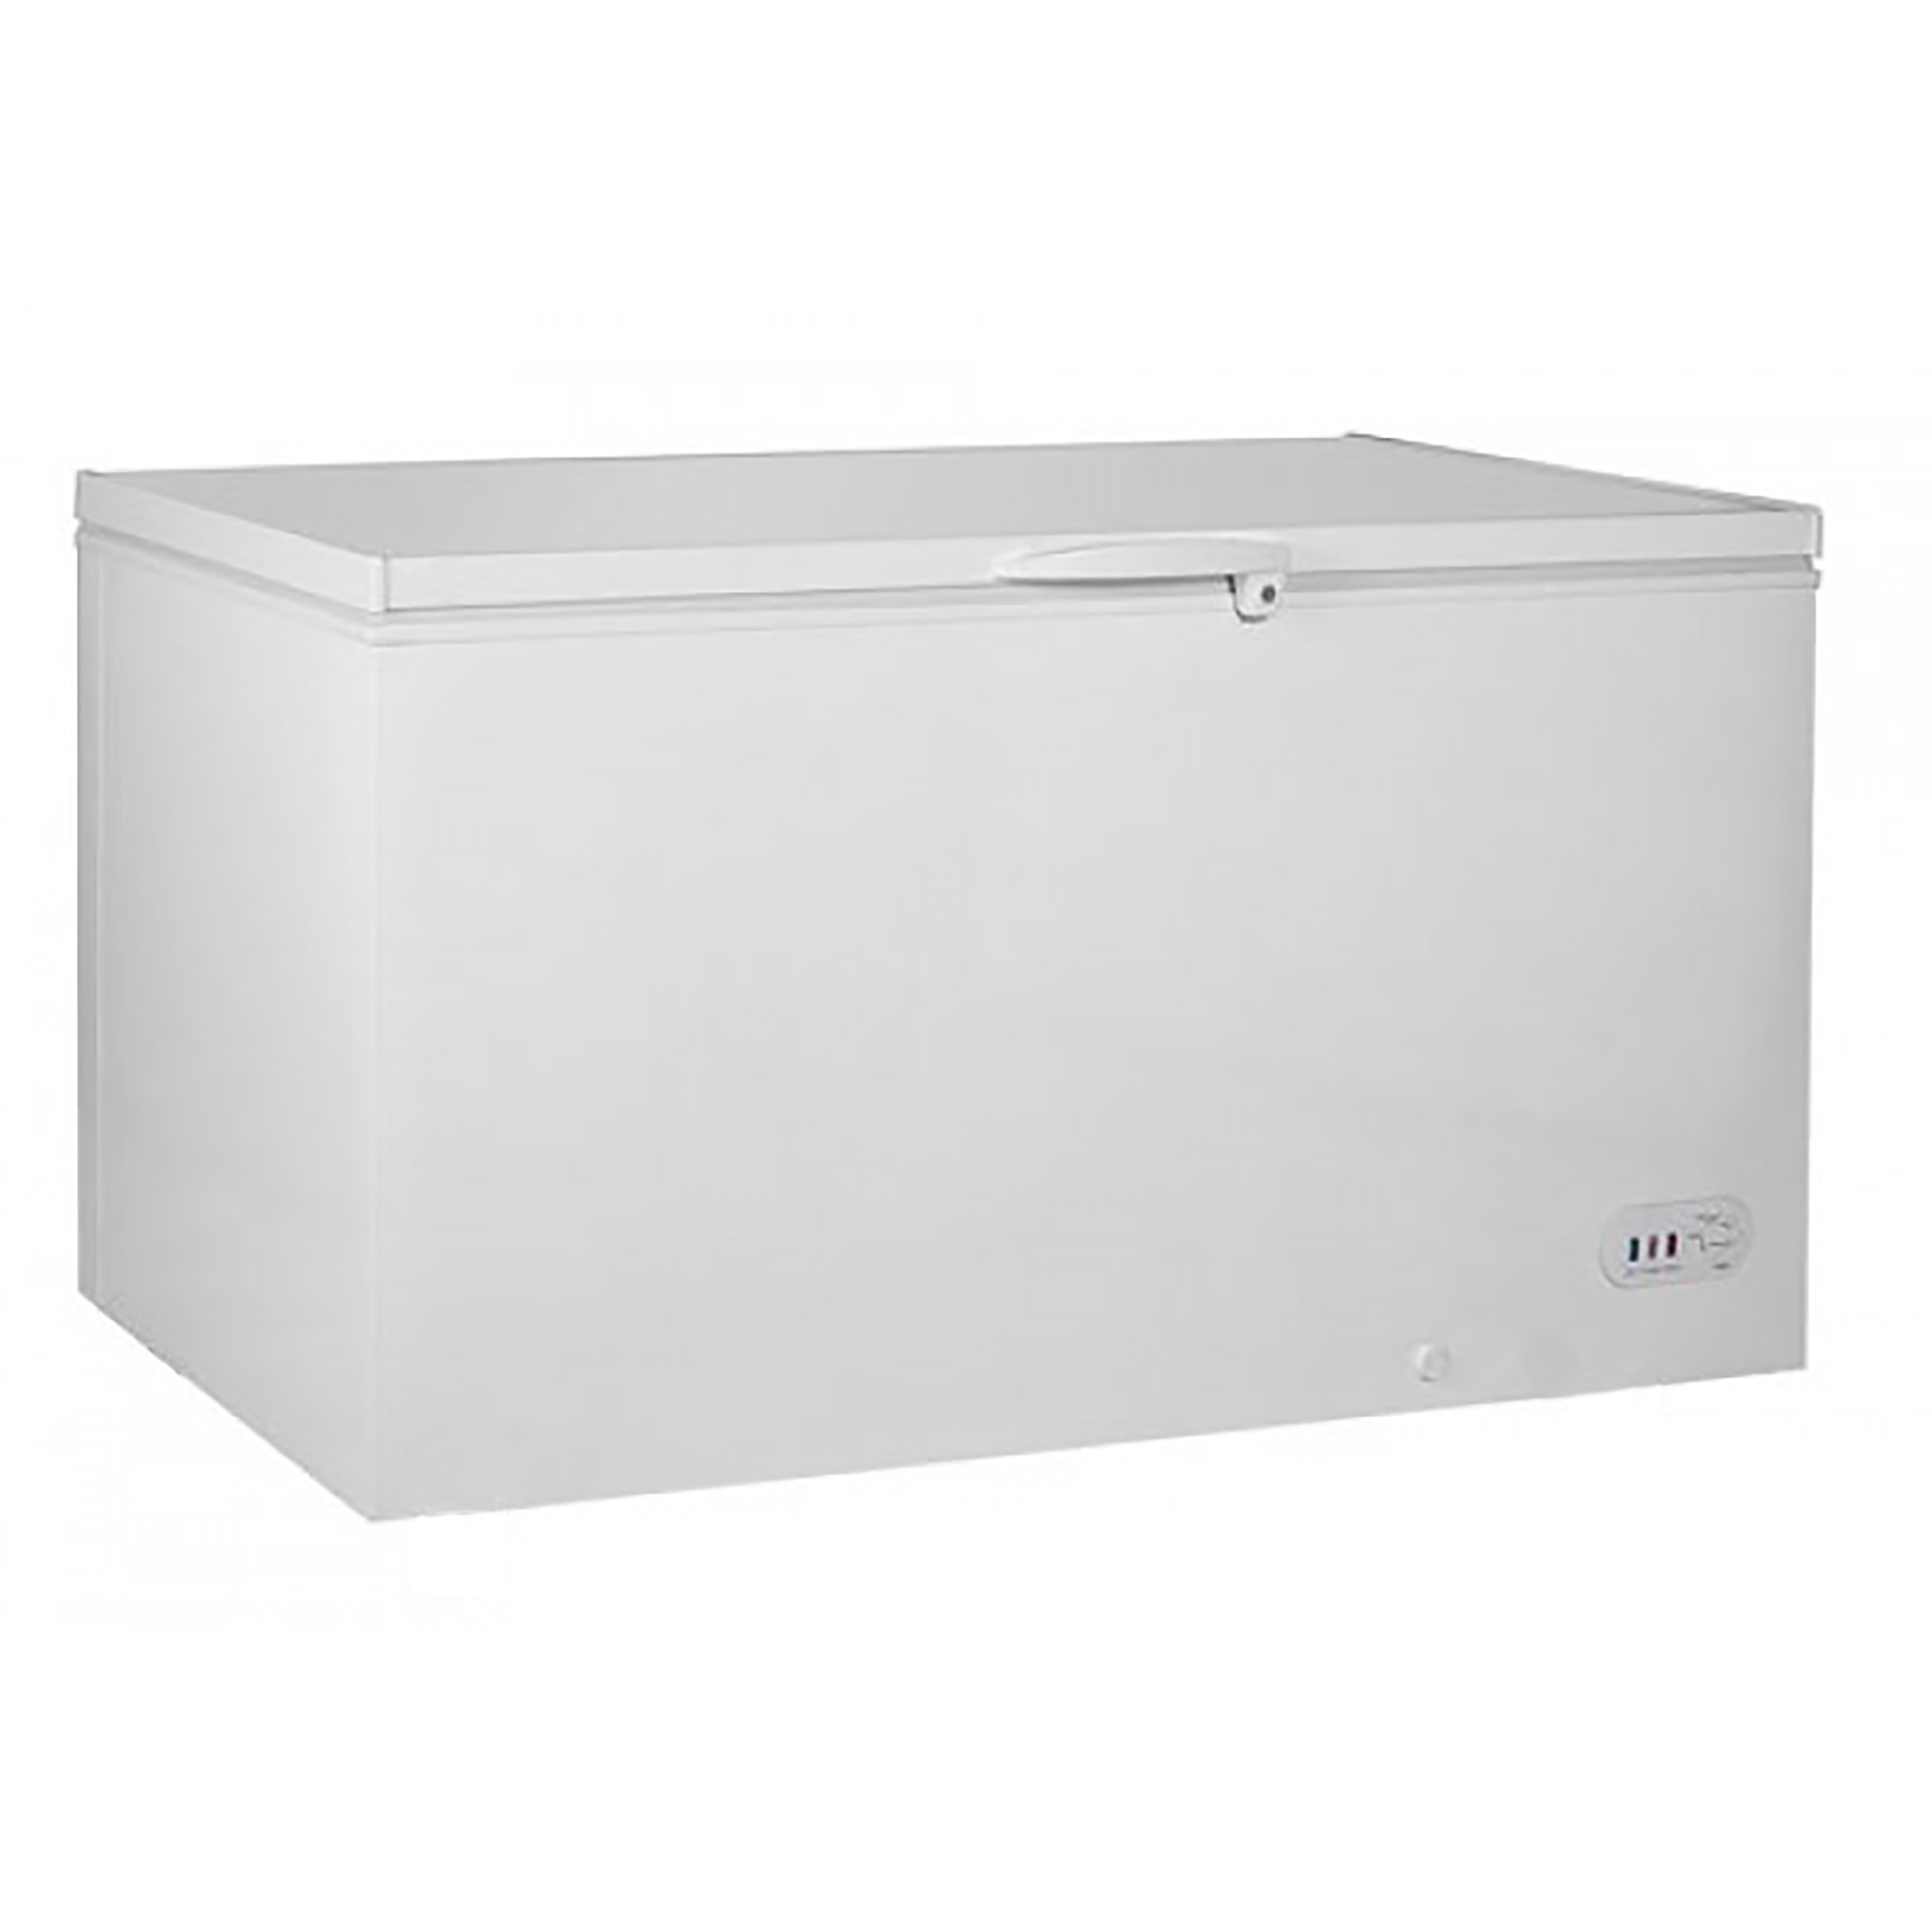 Admiral Craft BDCF-13R chest freezer